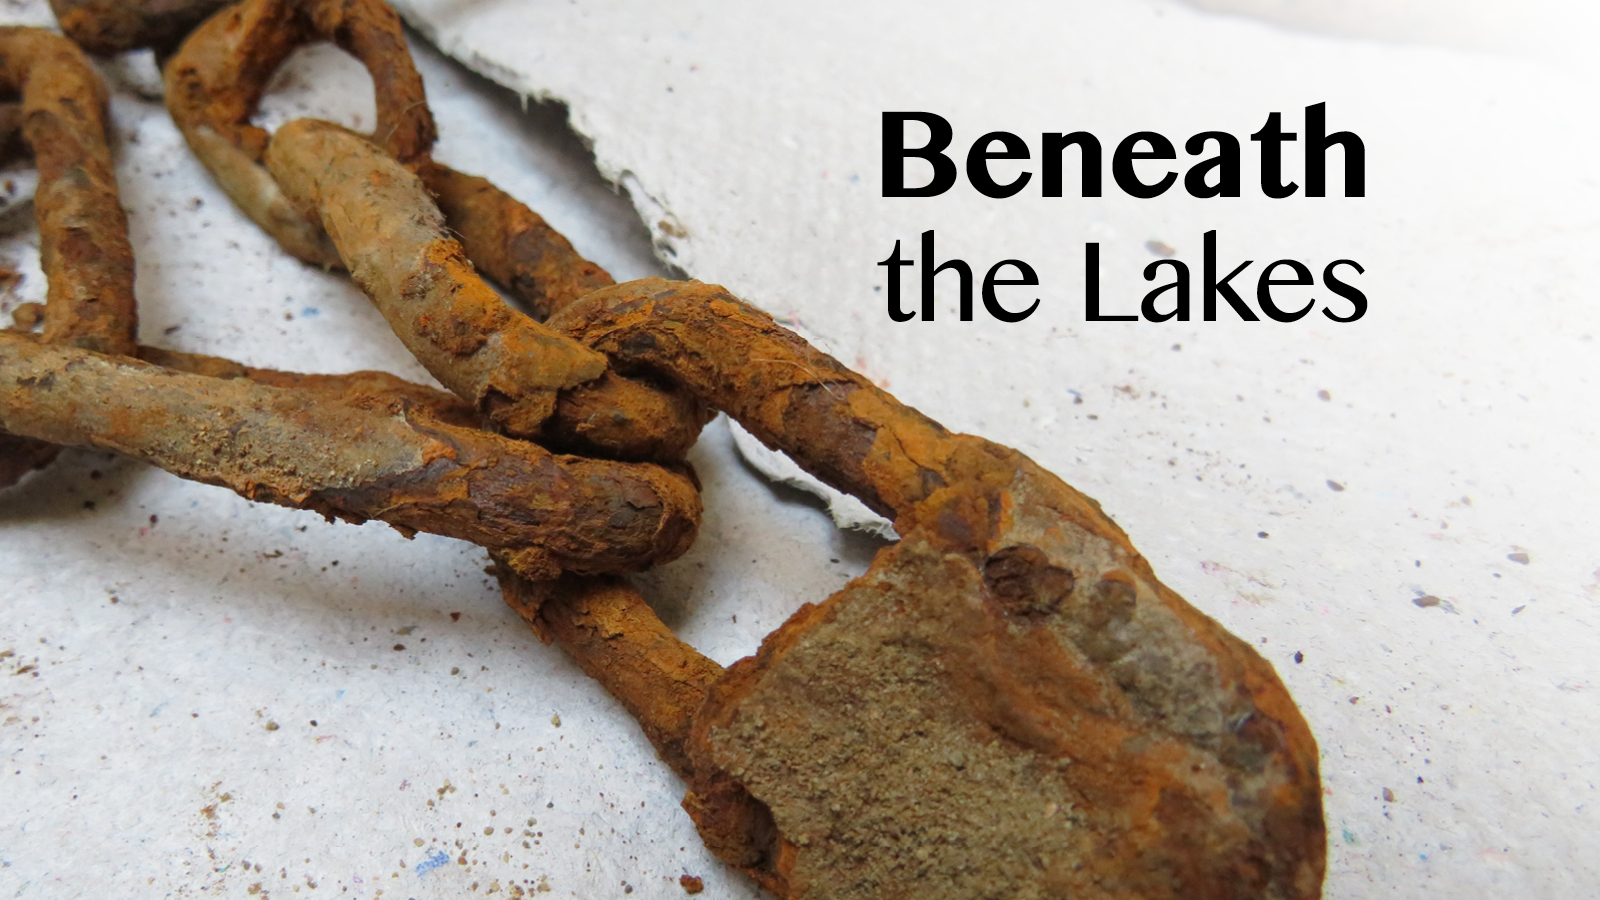 Exhibition Image - Beaneath The Lakes